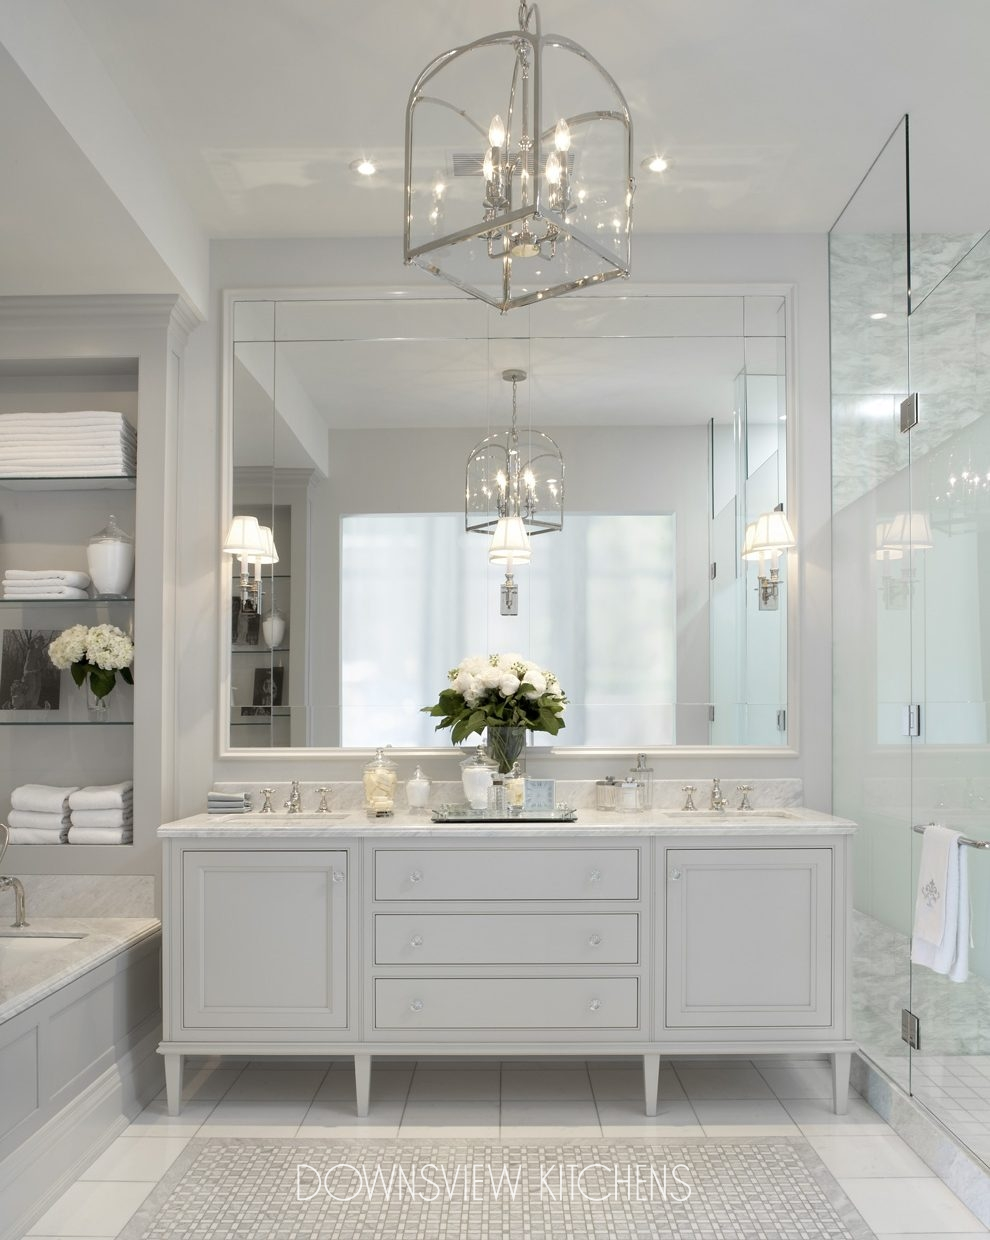 PRIVATE OASIS - Downsview Kitchens and Fine Custom Cabinetry ...